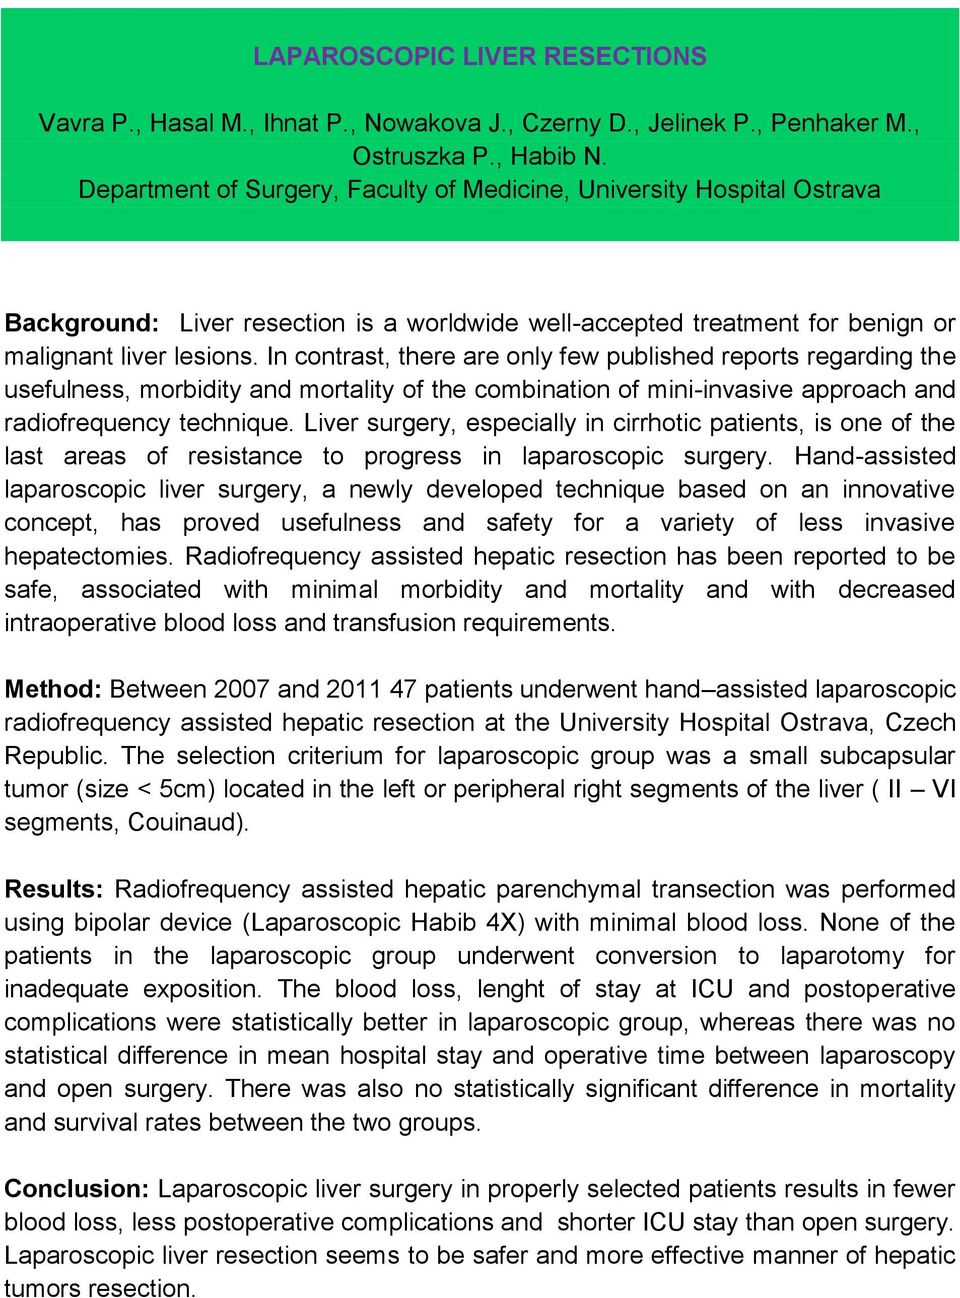 In contrast, there are only few published reports regarding the usefulness, morbidity and mortality of the combination of mini-invasive approach and radiofrequency technique.